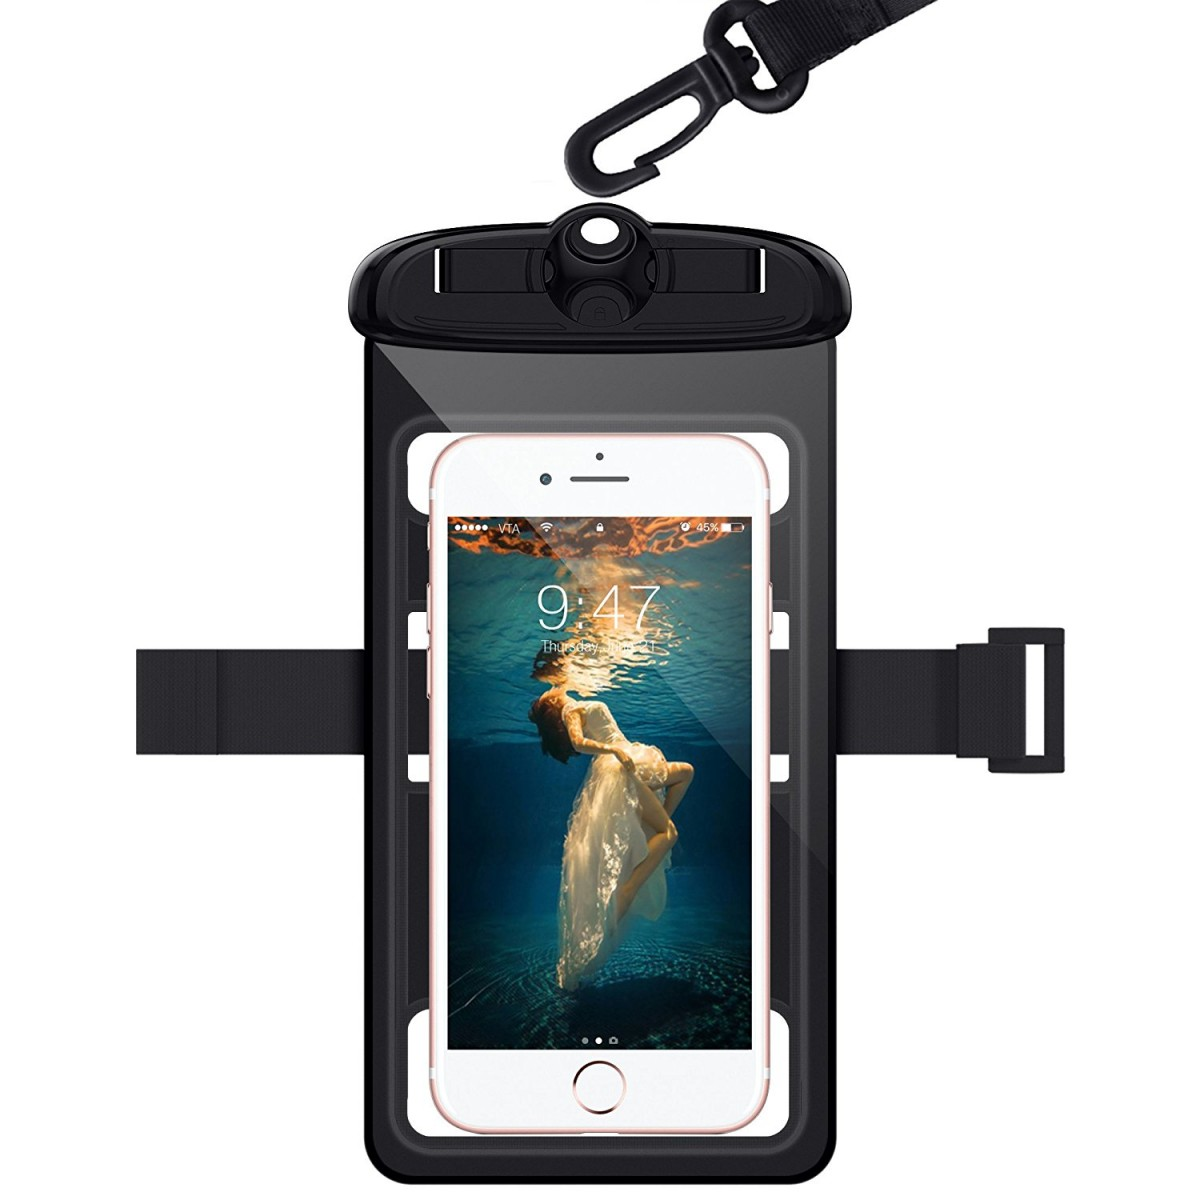 hot sale online 18590 9c5d8 WorCord Universal Waterproof Case [Triple Lock] Cellphone Dry Bag Pouch  with Armband Neck Strap for Outdoor Swimming Skiing Activies for iPhone, ...